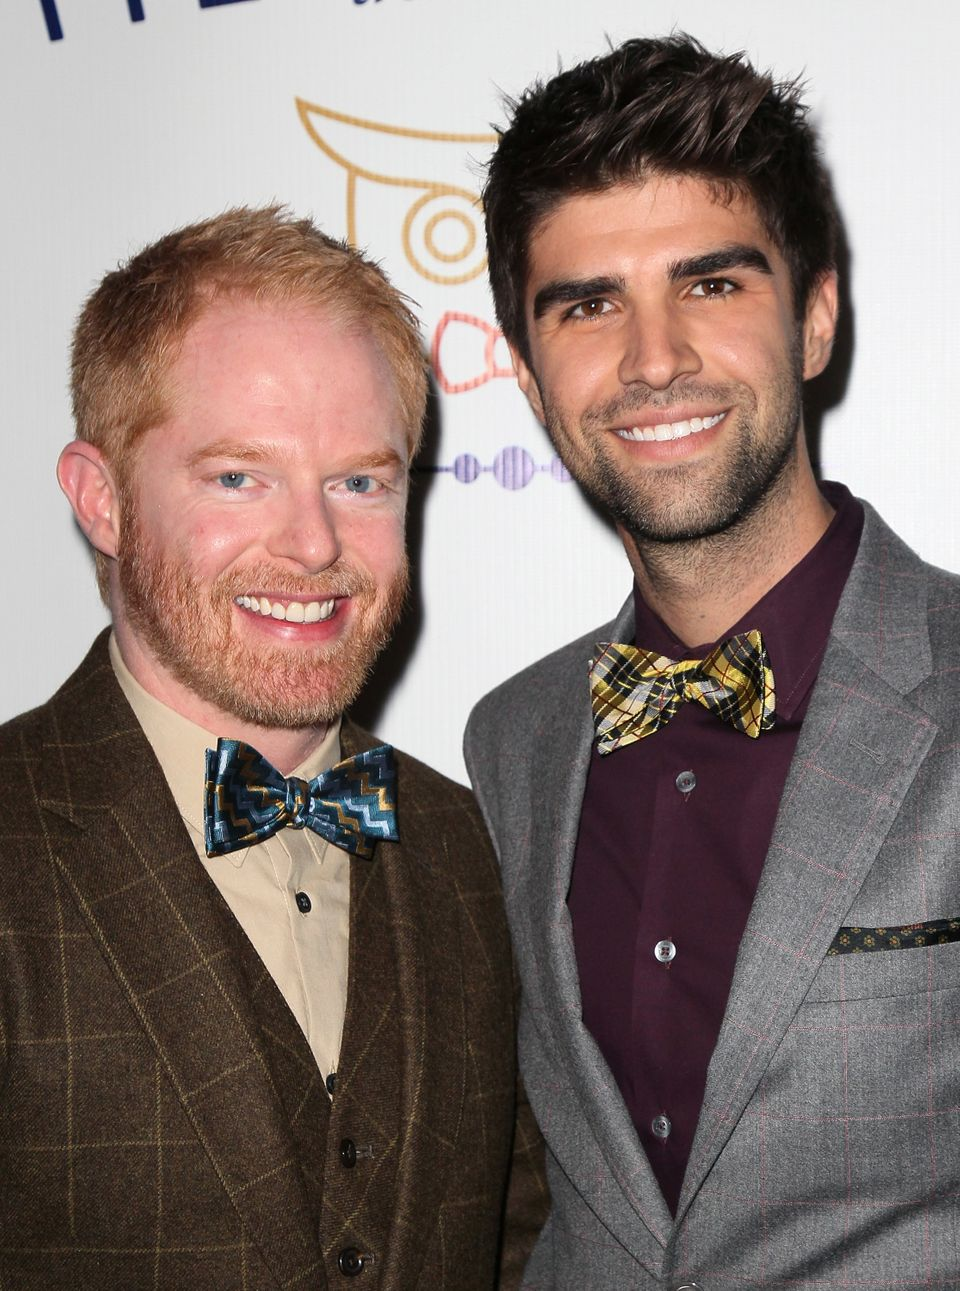 Tie The Knot launch — Nov. 14, 2012, in West Hollywood   (Photo by David Livingston/Getty Images)